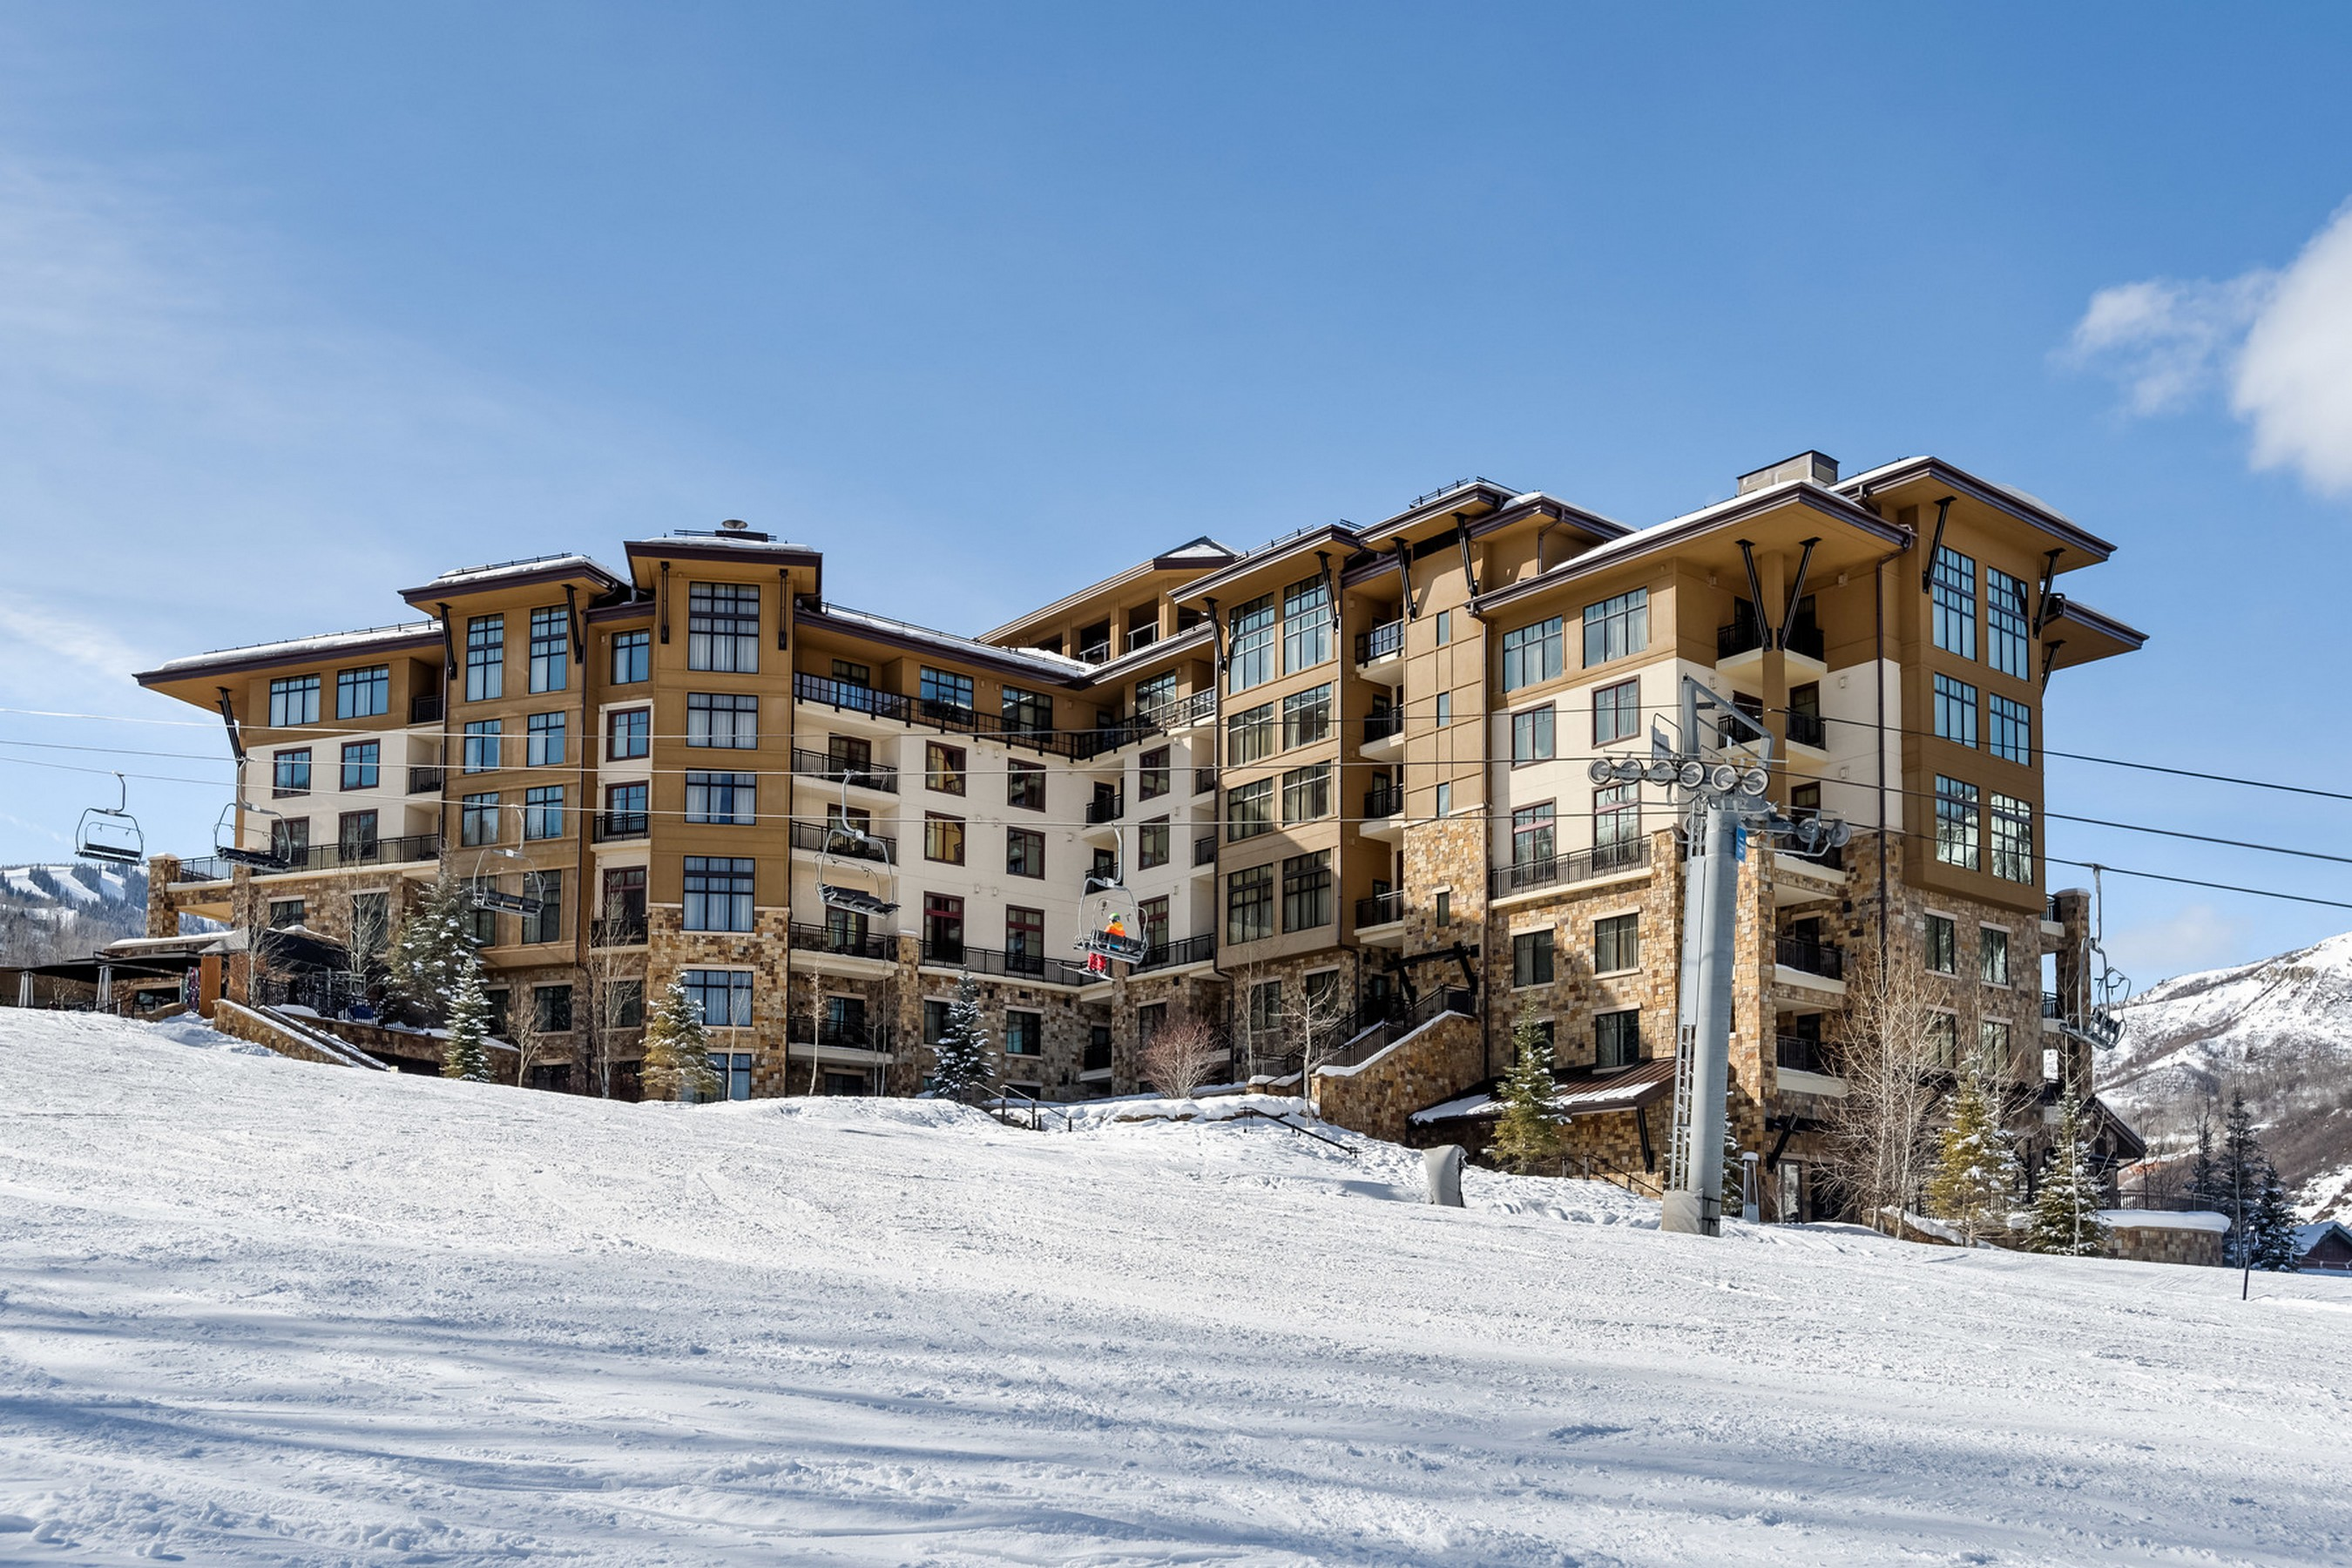 130 Wood Road, unit 214 Snowmass Village Photo 30